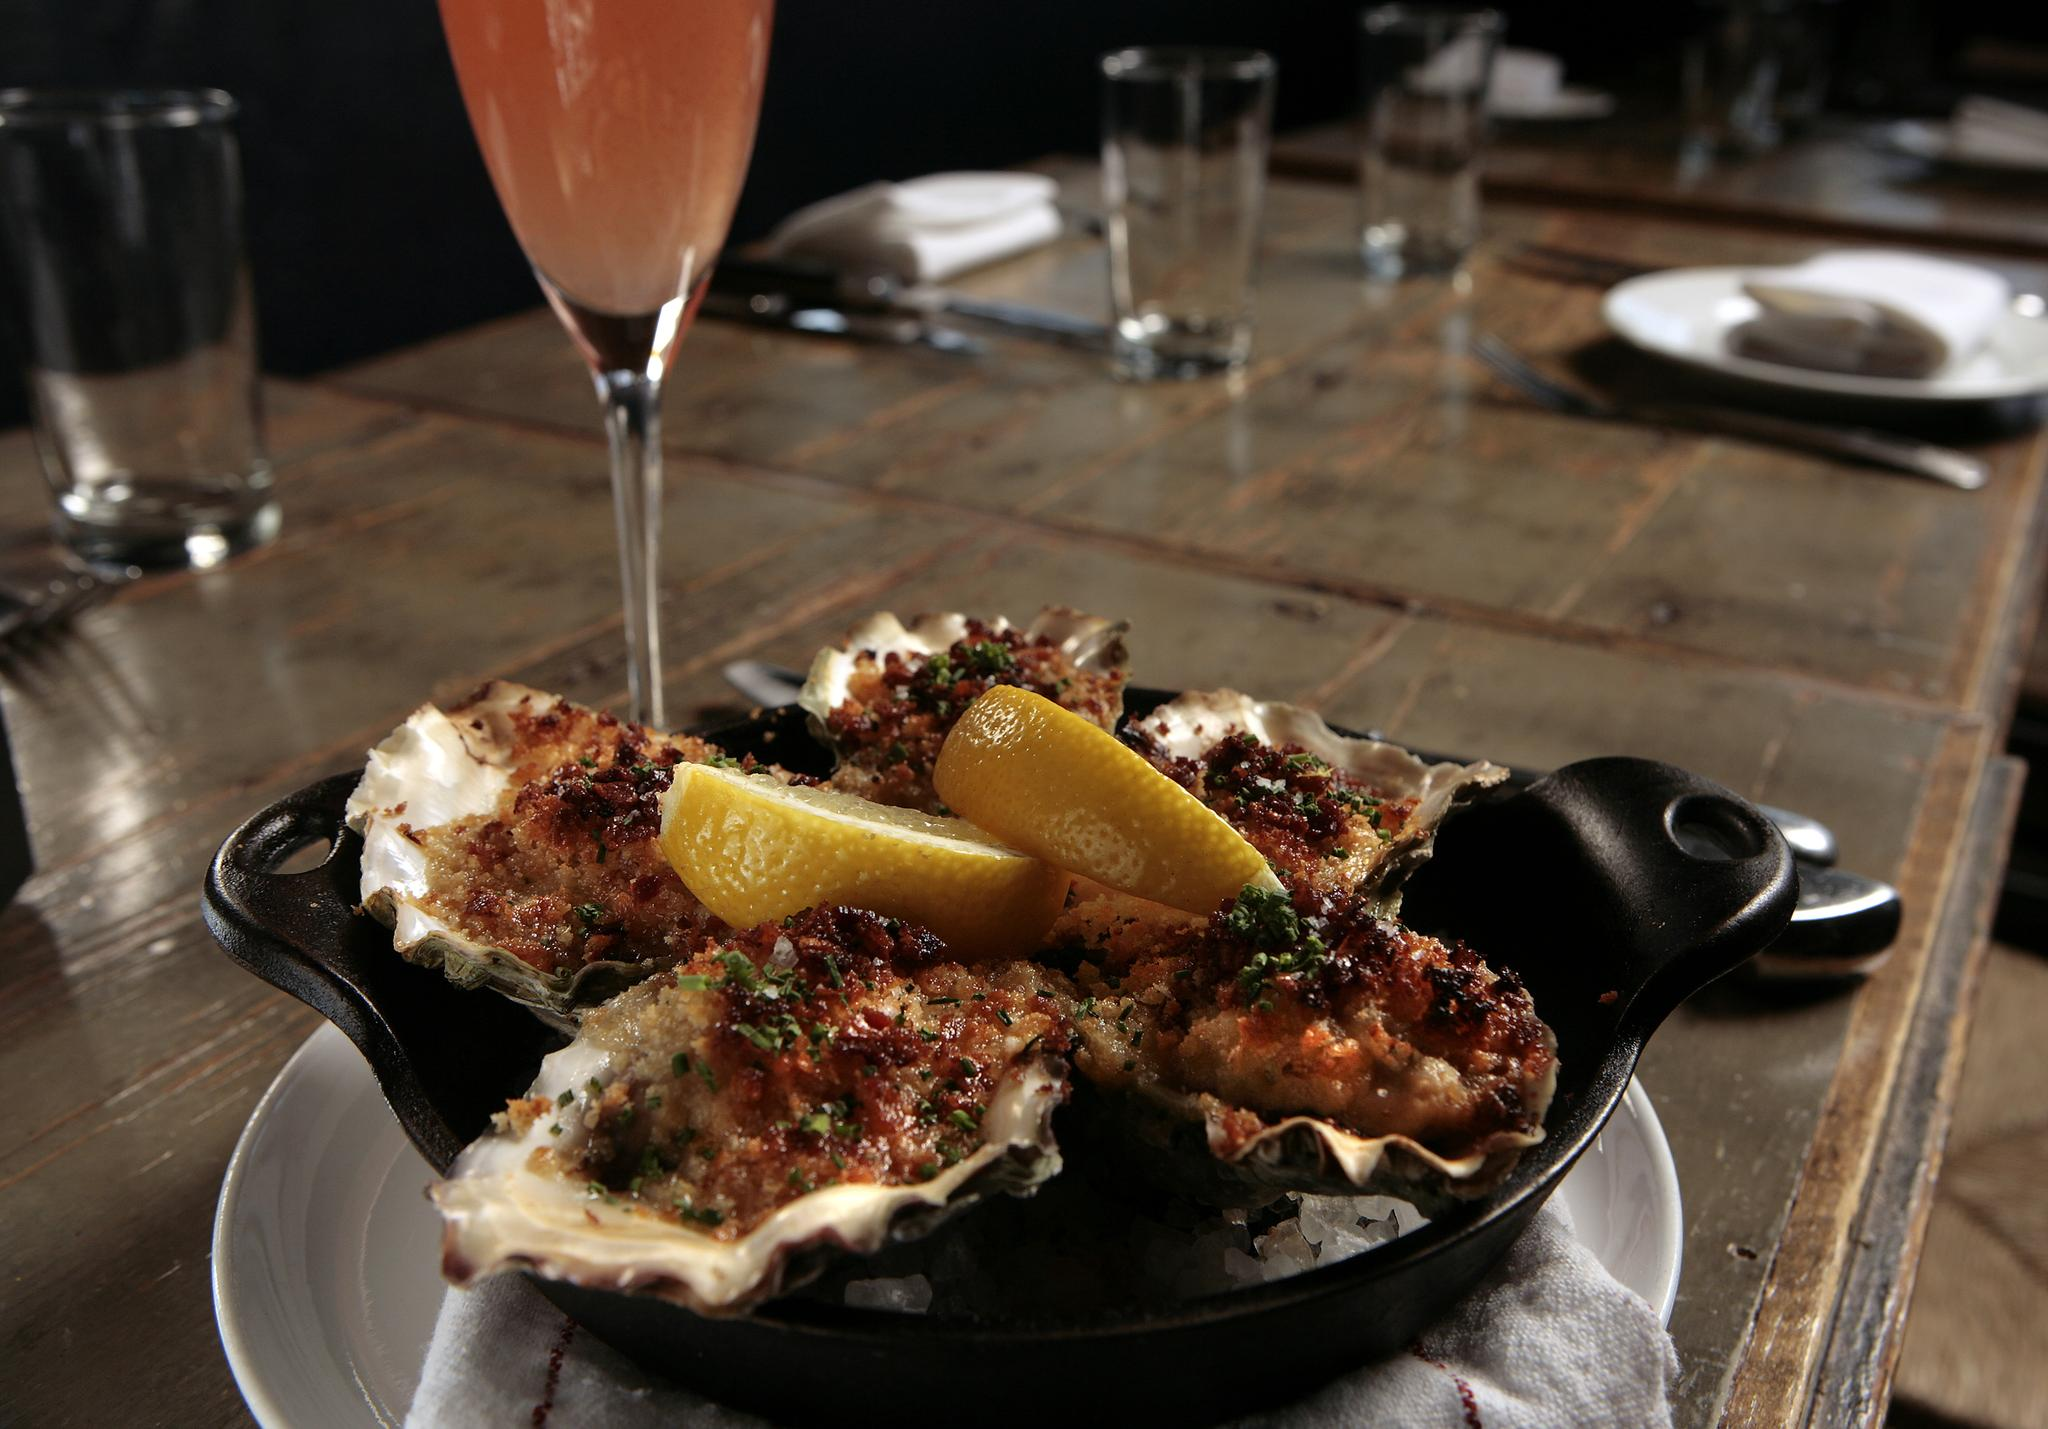 Marlowe is a stylish and lively restaurant serving Californian comfort food in a hip, sprawling space.